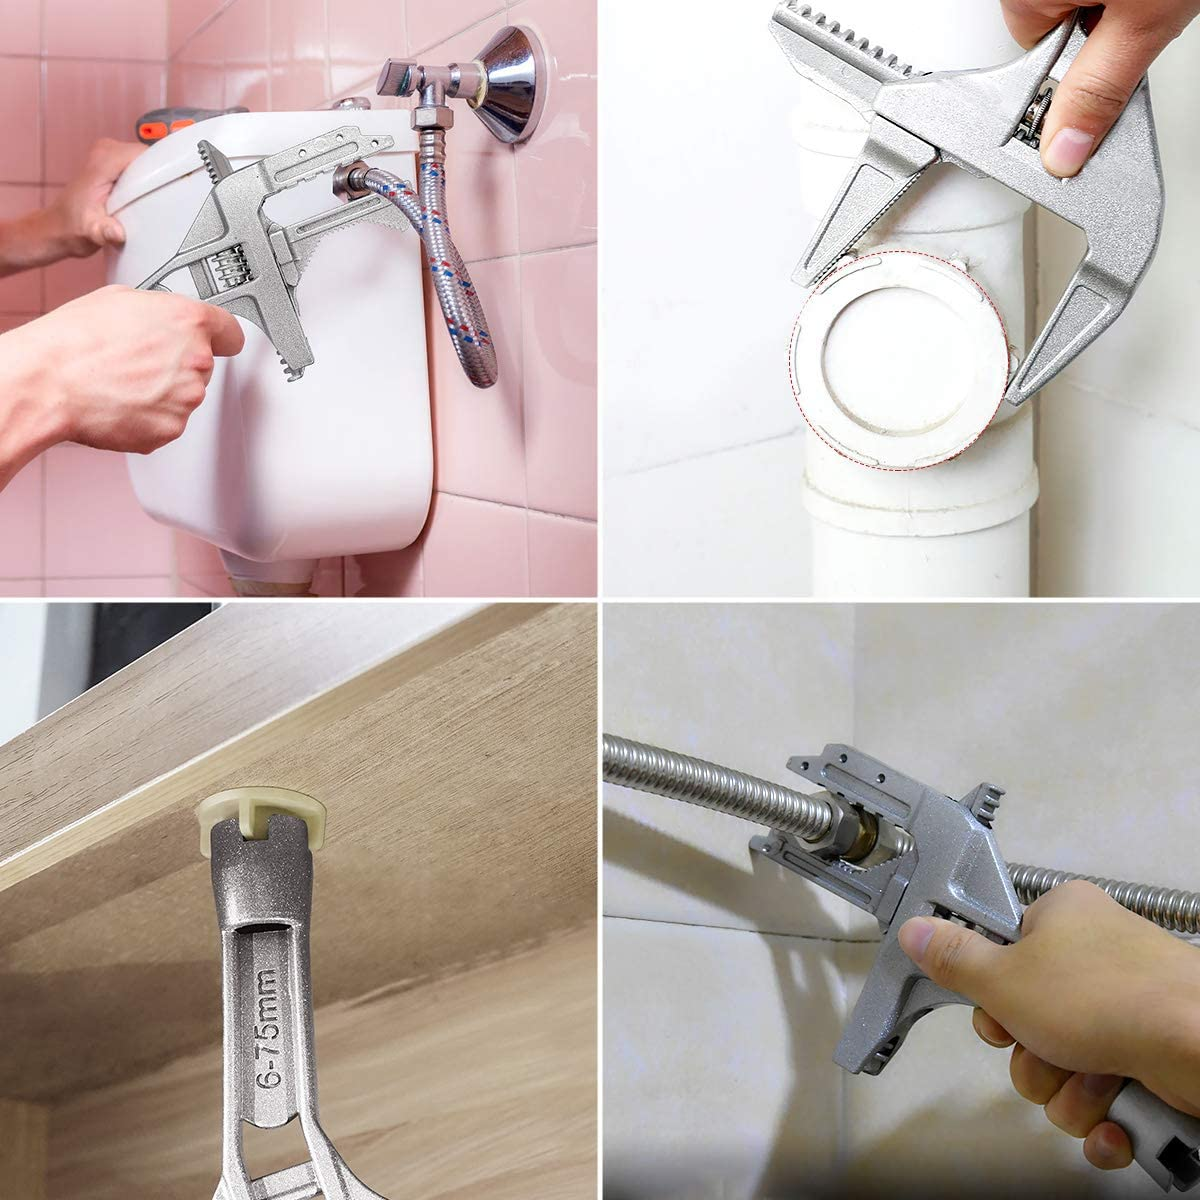 Aluminum Alloy Repair Tools for Bathroom Washbasin Tube Nut Disassembly Jhua 6-75mm Spanner Wrench Adjustable Spanner Wrenchs Short Shank Large Opening Wrench with 2 Spare Blades Adjustable Wrench